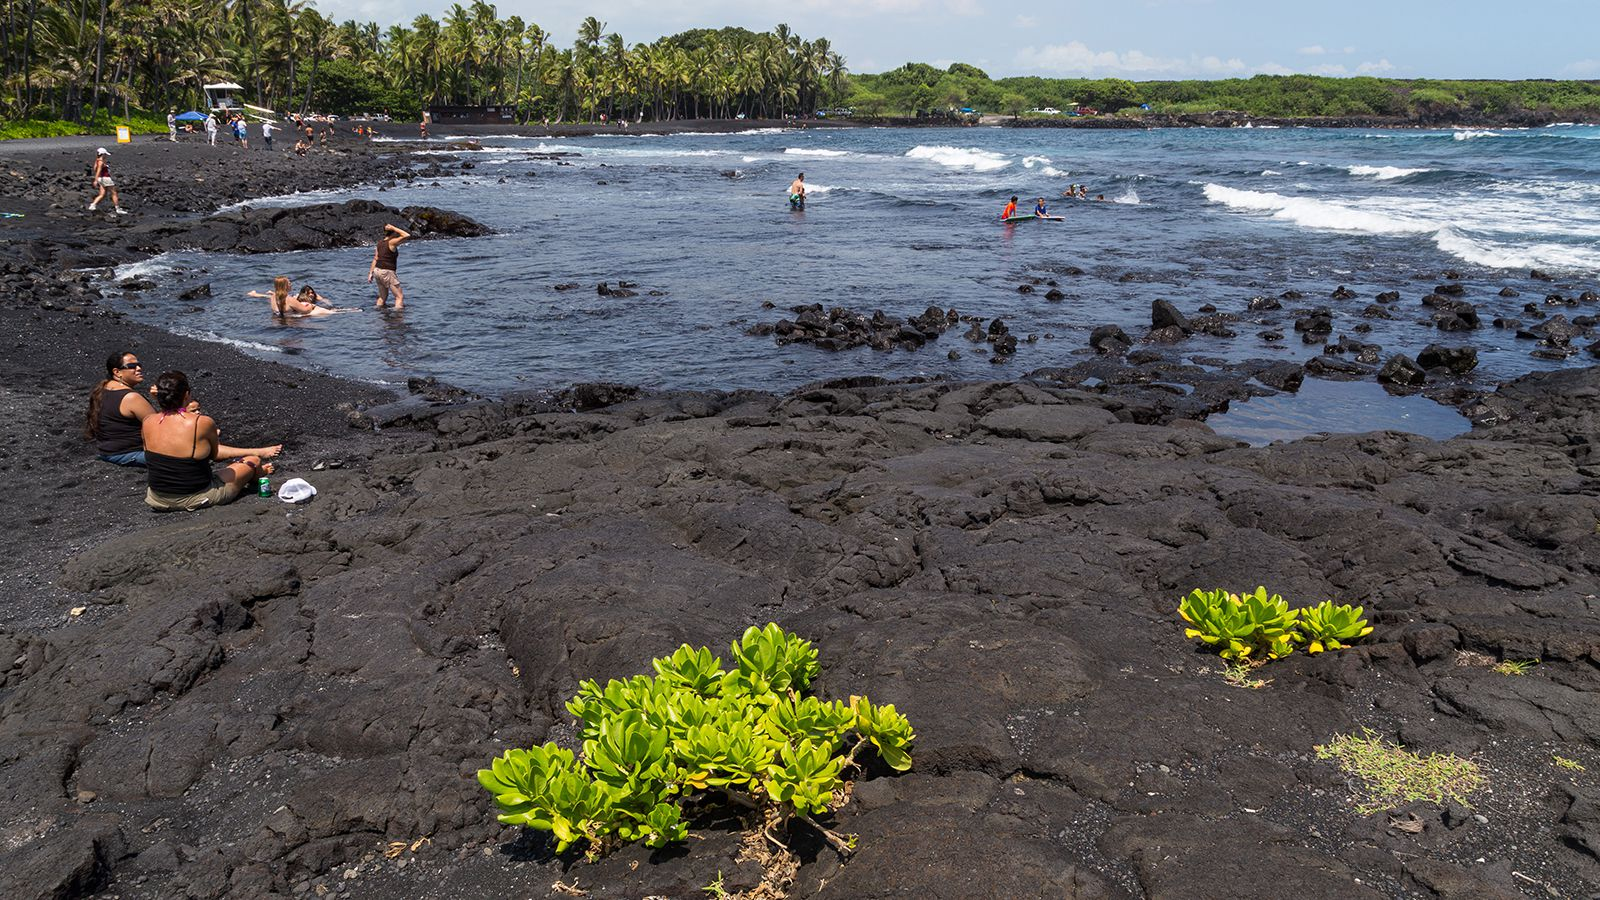 NAALEHU, HAWAII, UNITED STATES - 2015/09/20: Punaluu Black Sand Beach is one the most famous black sand beaches on the Big Island of Hawaii.  Located on the Kau coast near the town of Naalehu, it is frequented by green sea turtles basking on the beach.  S